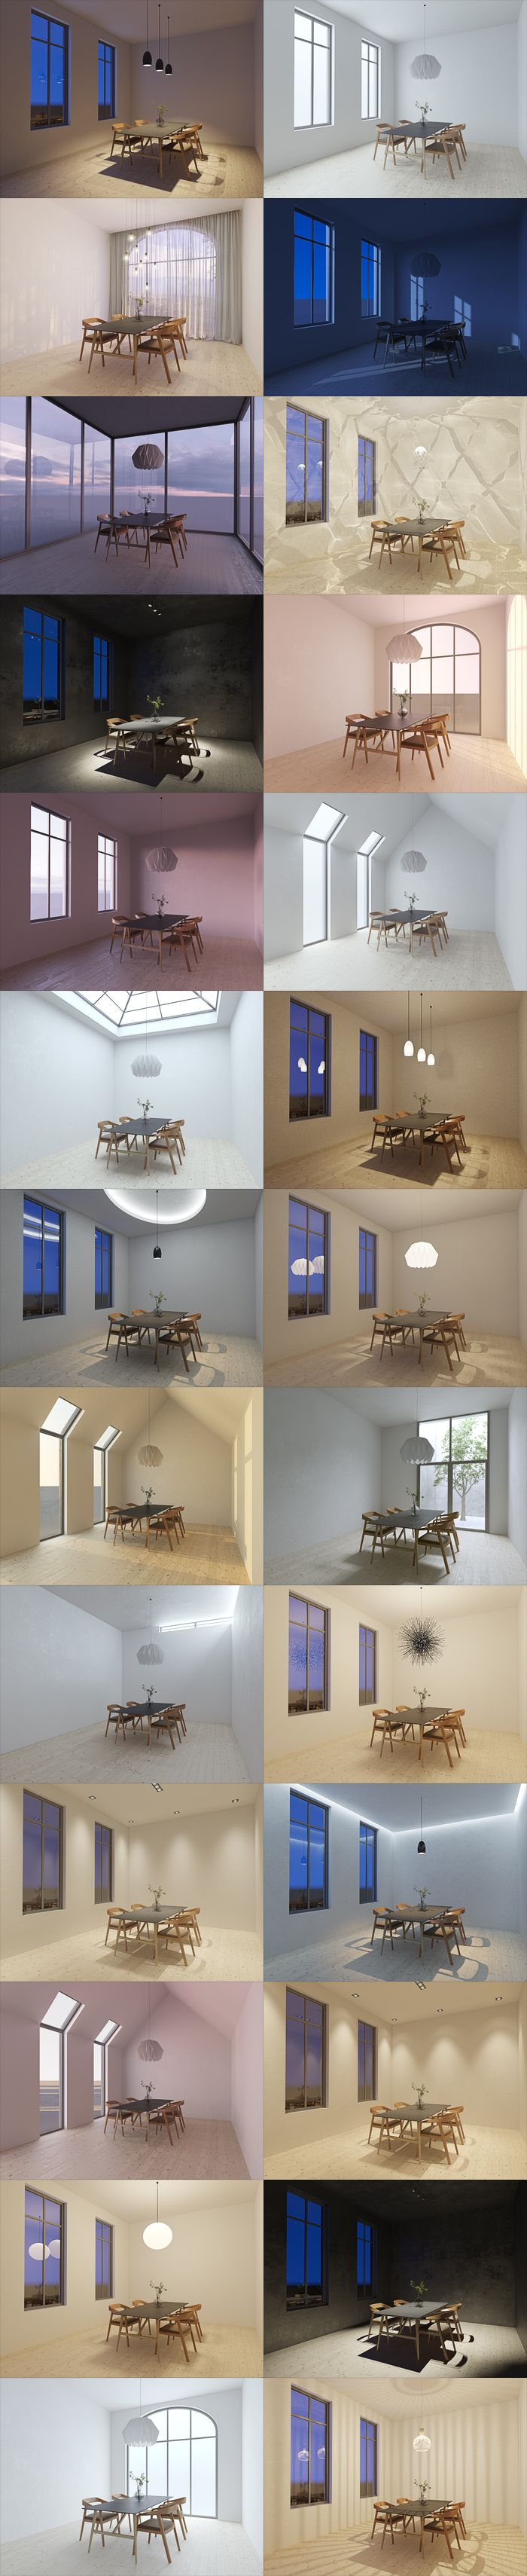 Vray Interior Lighting / VISCORBEL